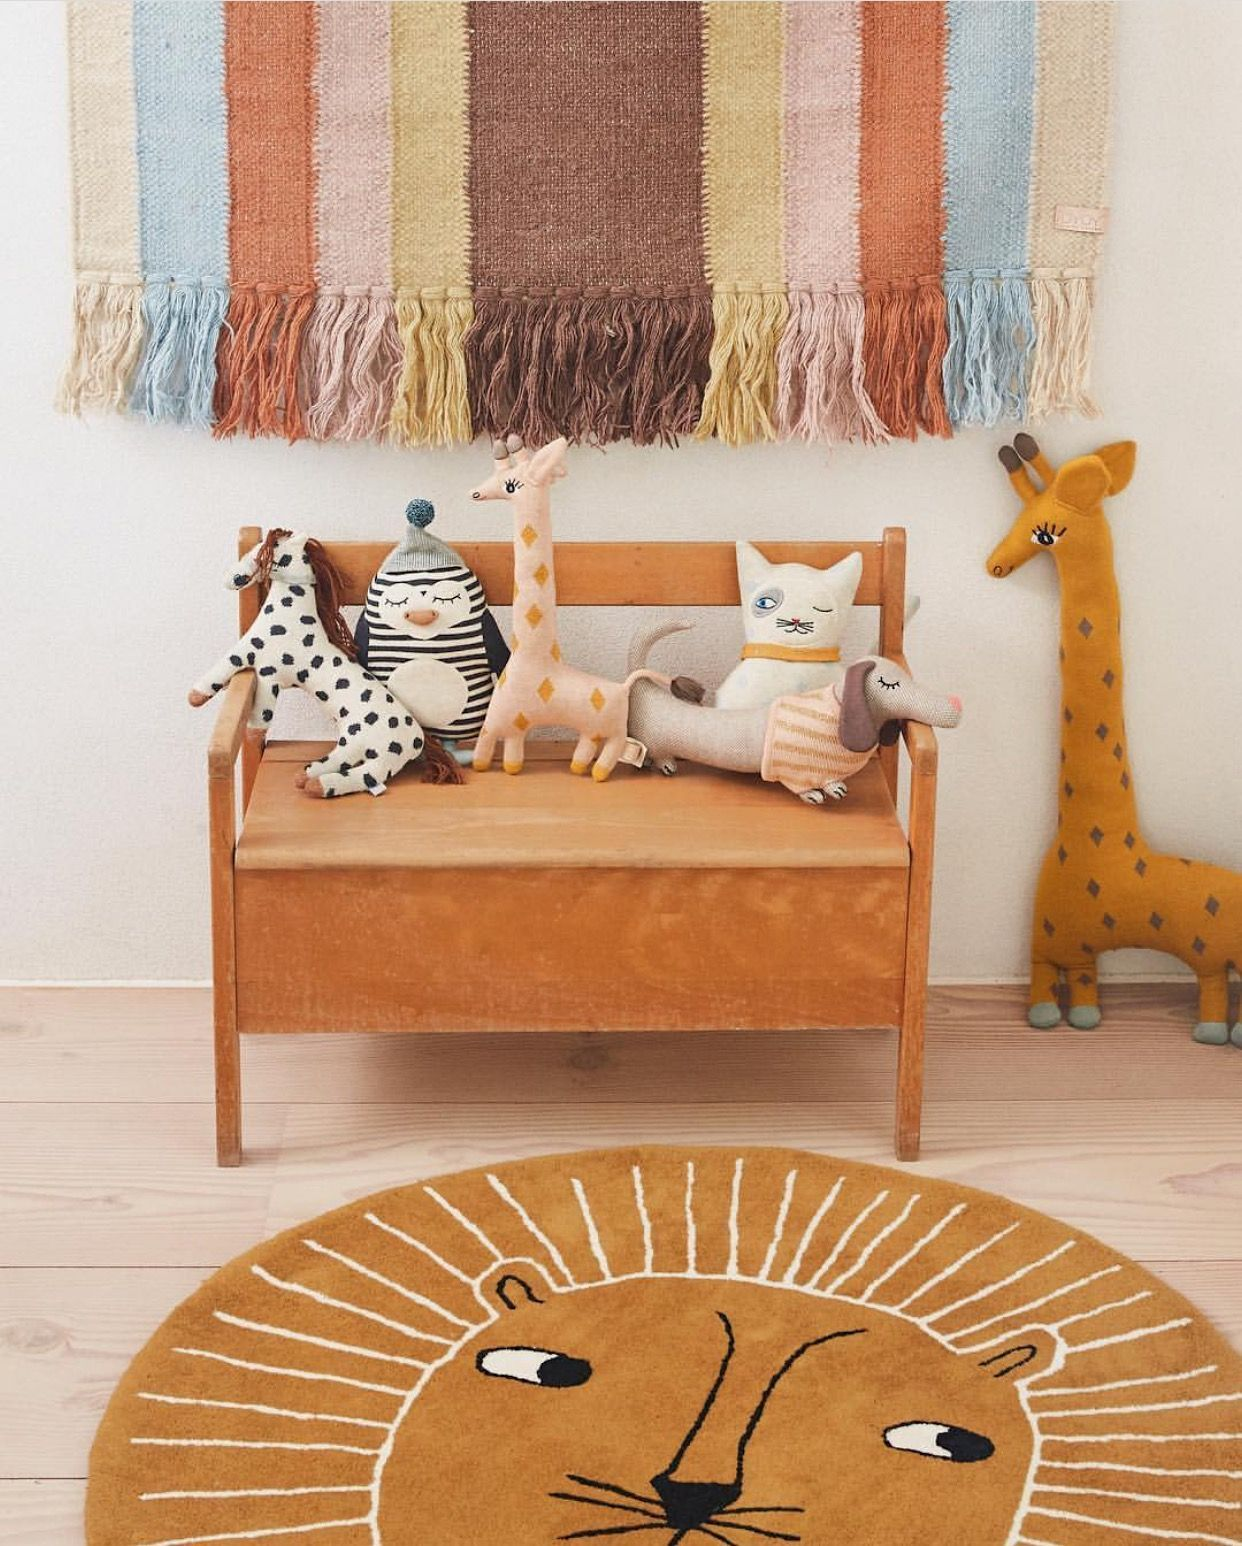 Amazing children\'s bedroom accessories and ideas | Find more ...